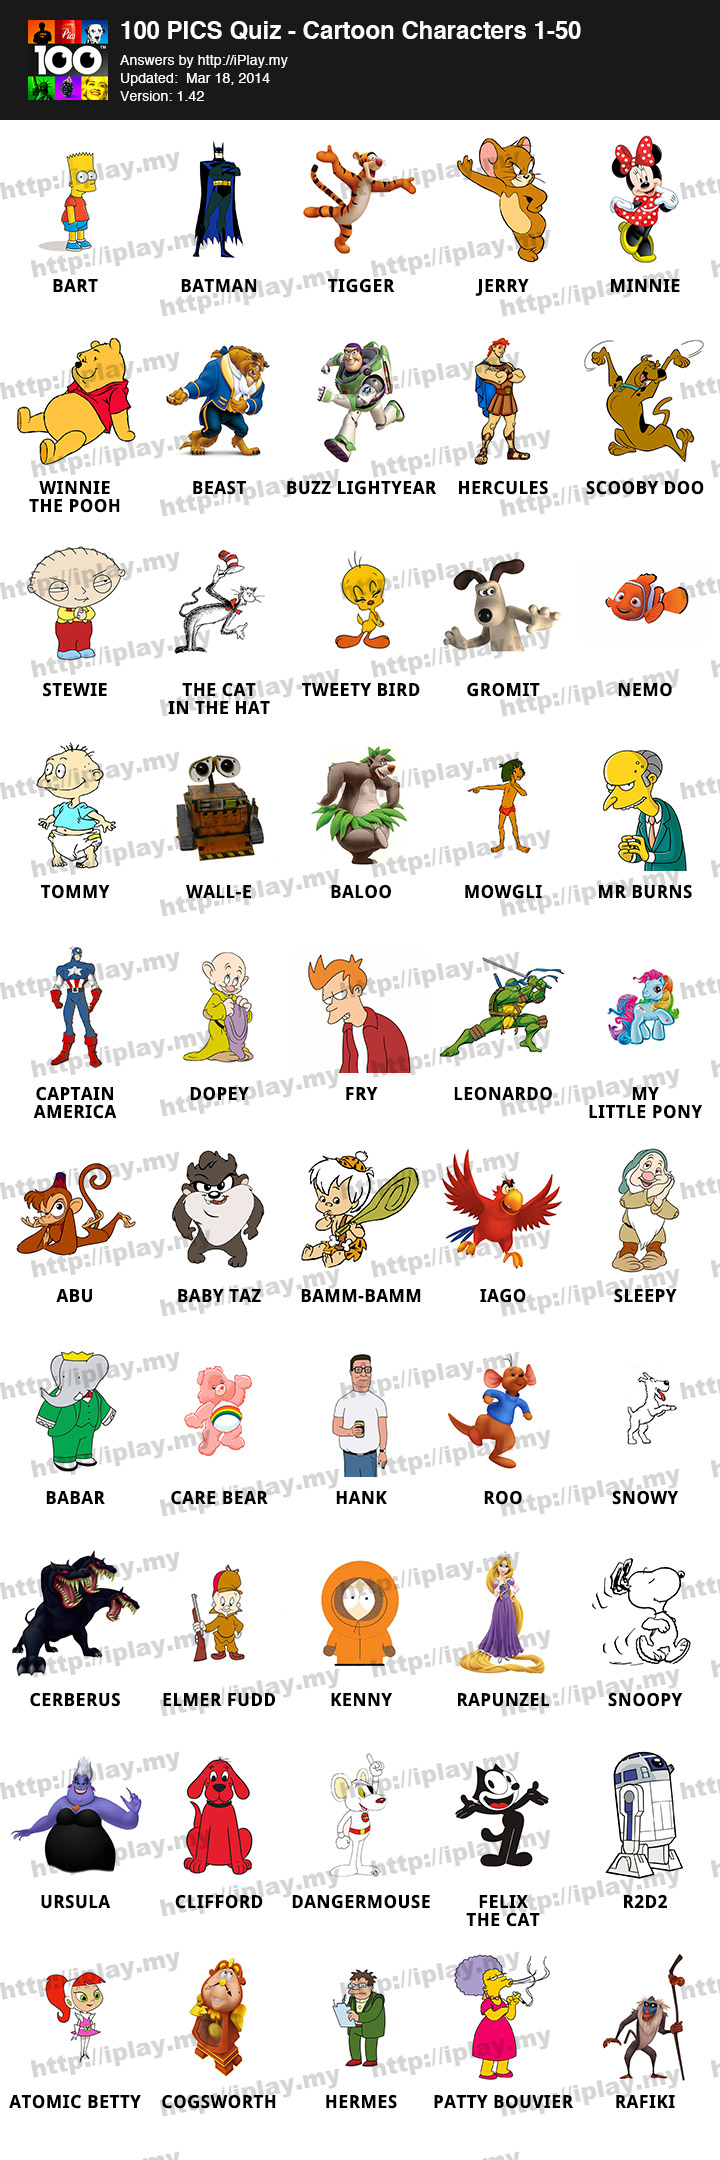 Cartoon Characters Quiz Questions And Answers : Pics cartoon characters answers iplay my page